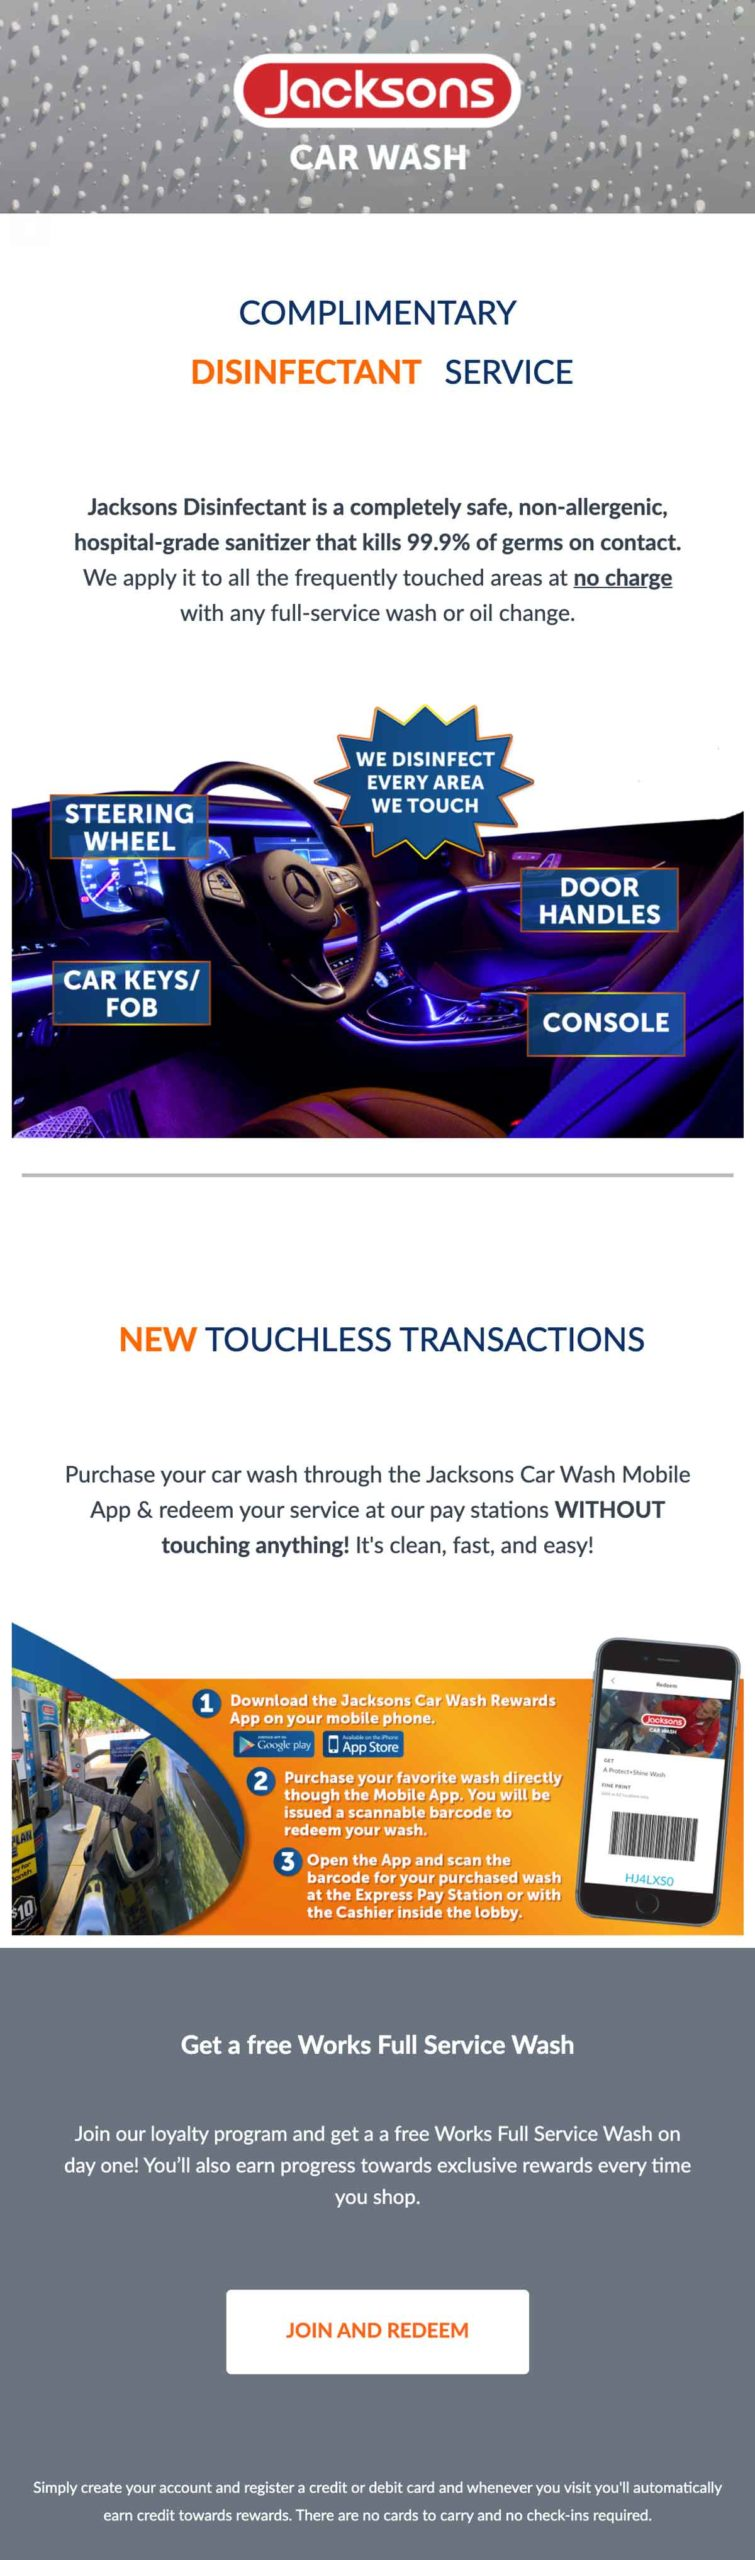 Jacksons Car Wash email update